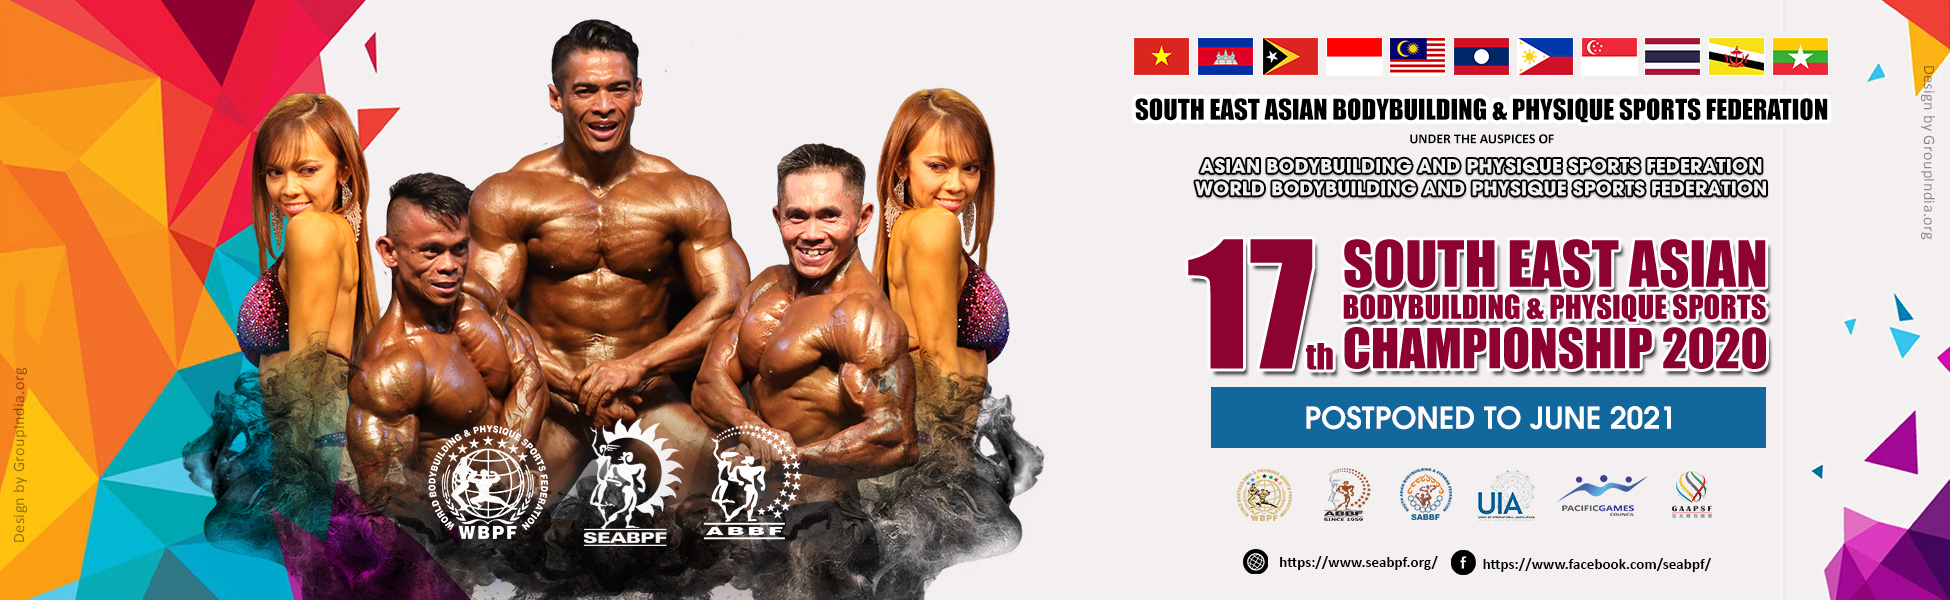 17th-South-East-Asian-Bodybuilding-And-Physique-Sports-Championships-2020